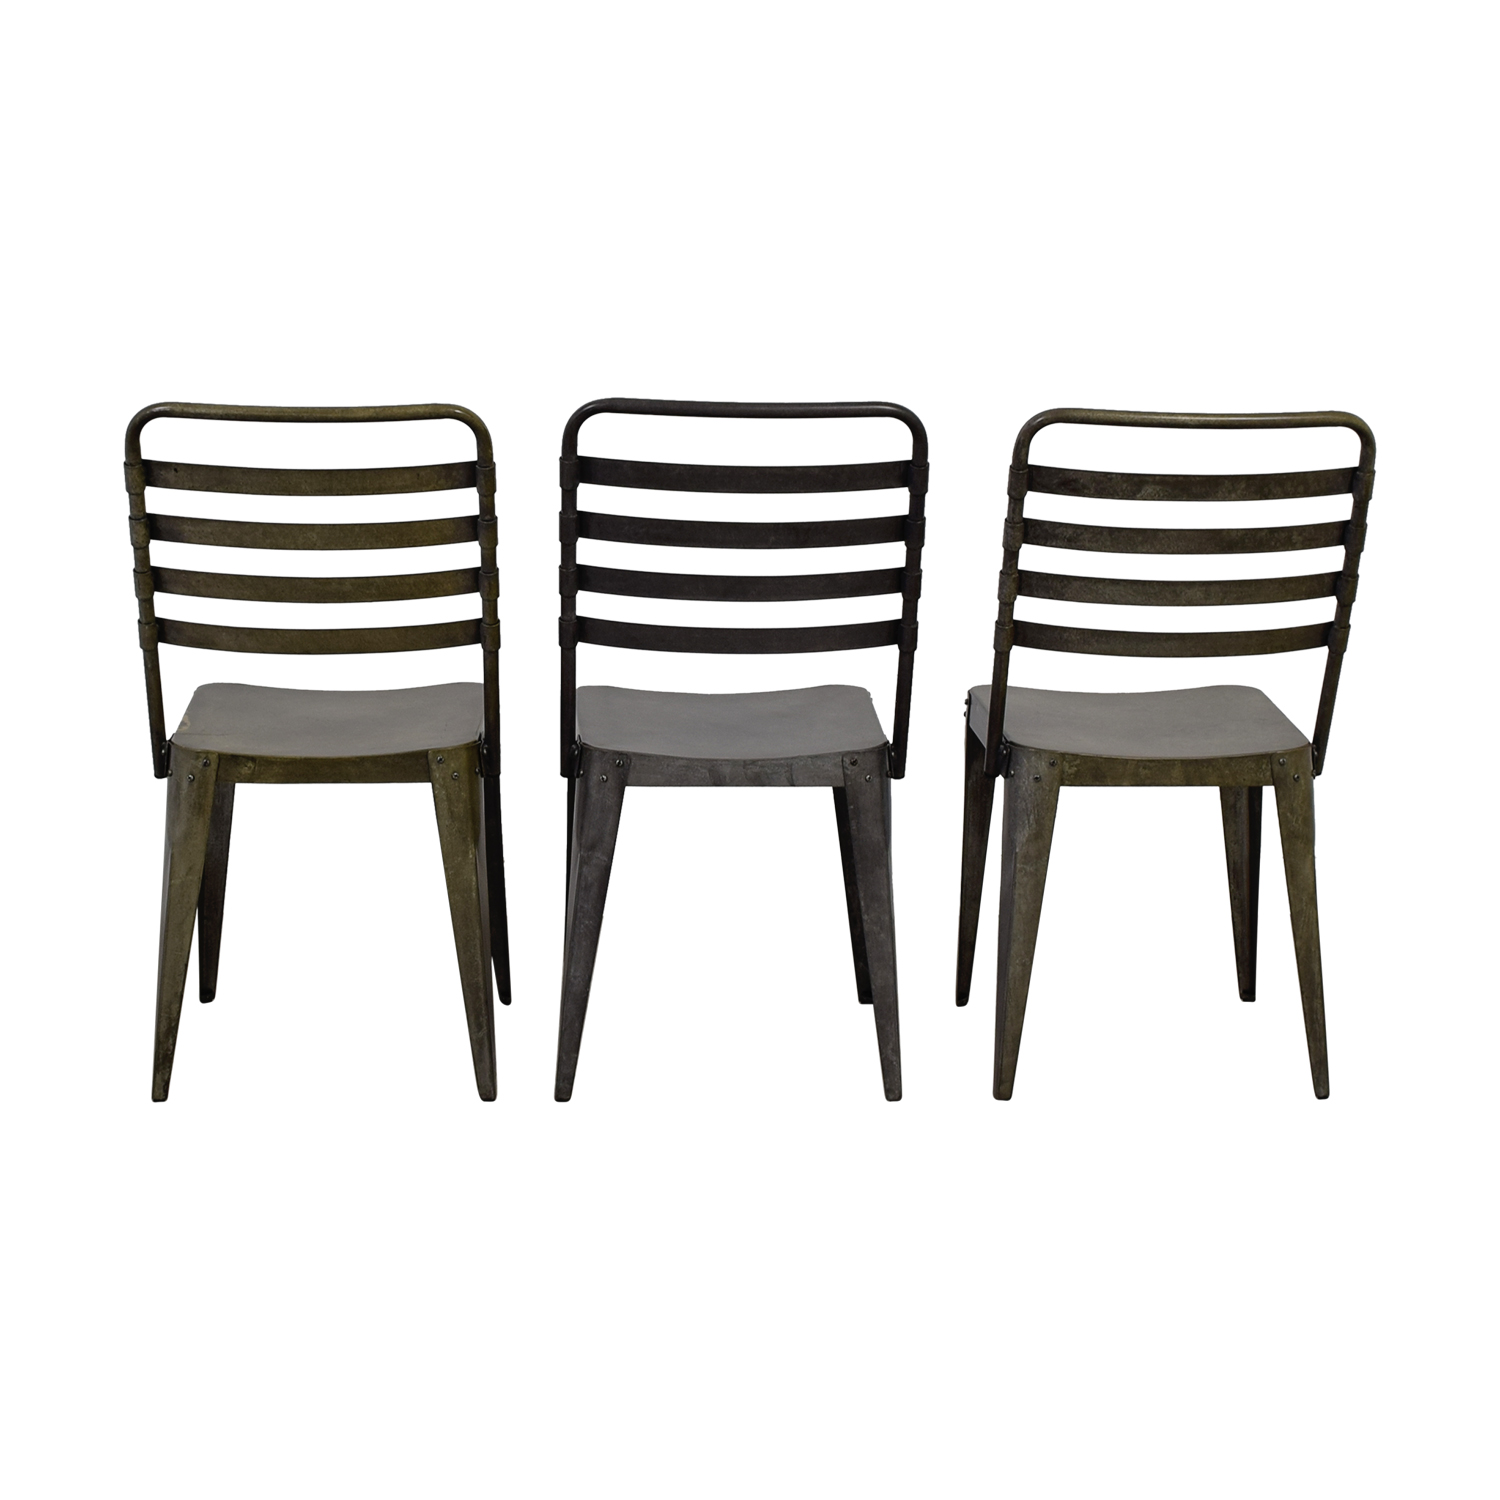 CB2 CB2 Metropolitan Distressed Metal Chairs discount